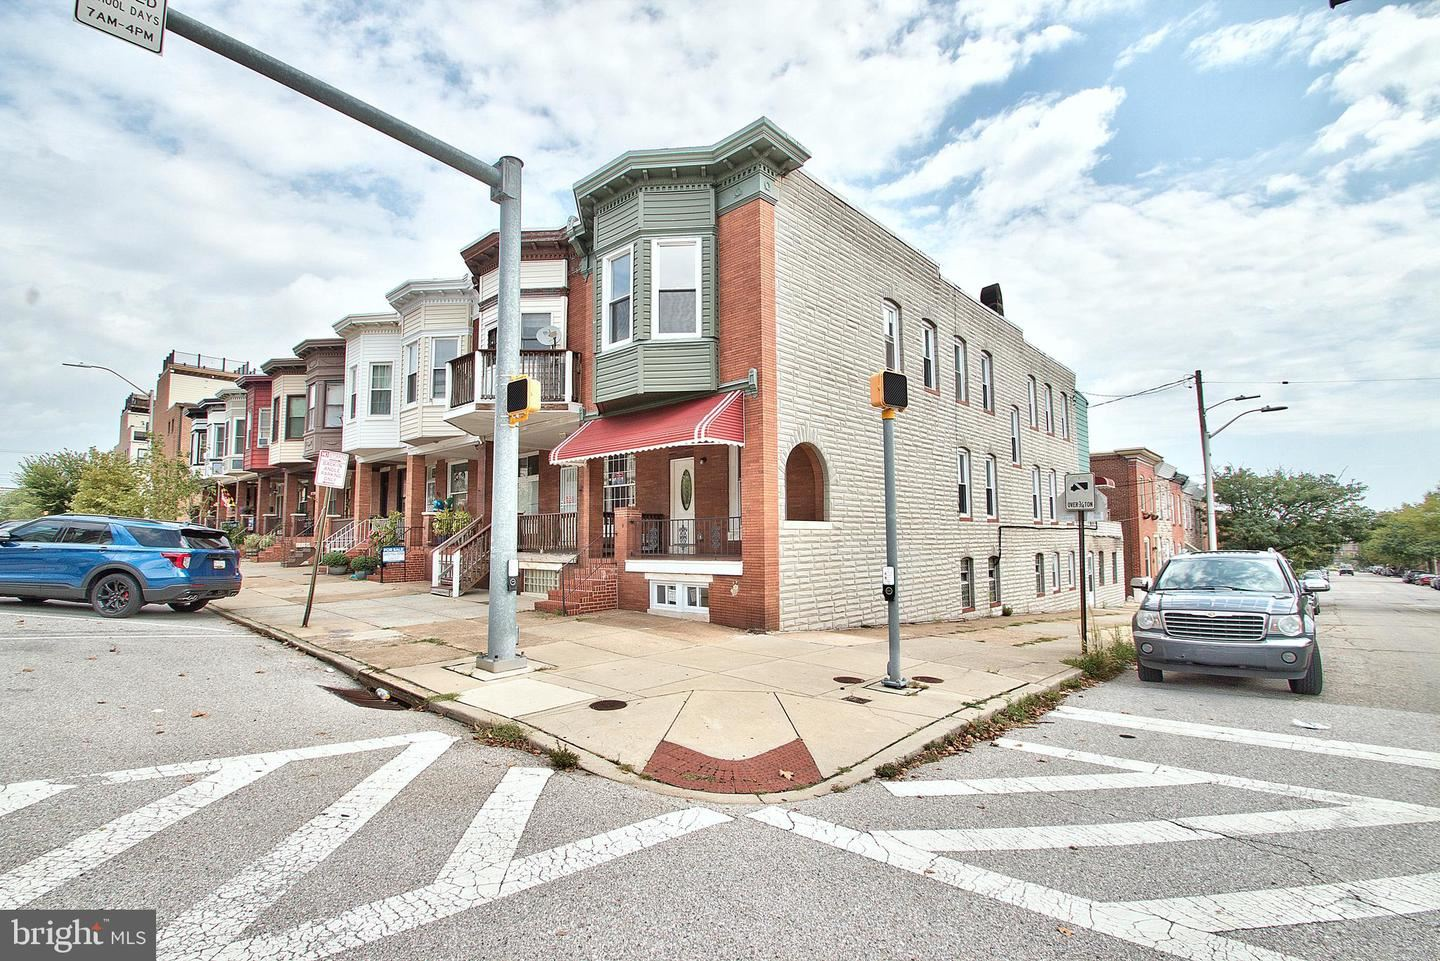 639 S CONKLING ST, Baltimore, MD 21224 - MLS#: MDBA523340